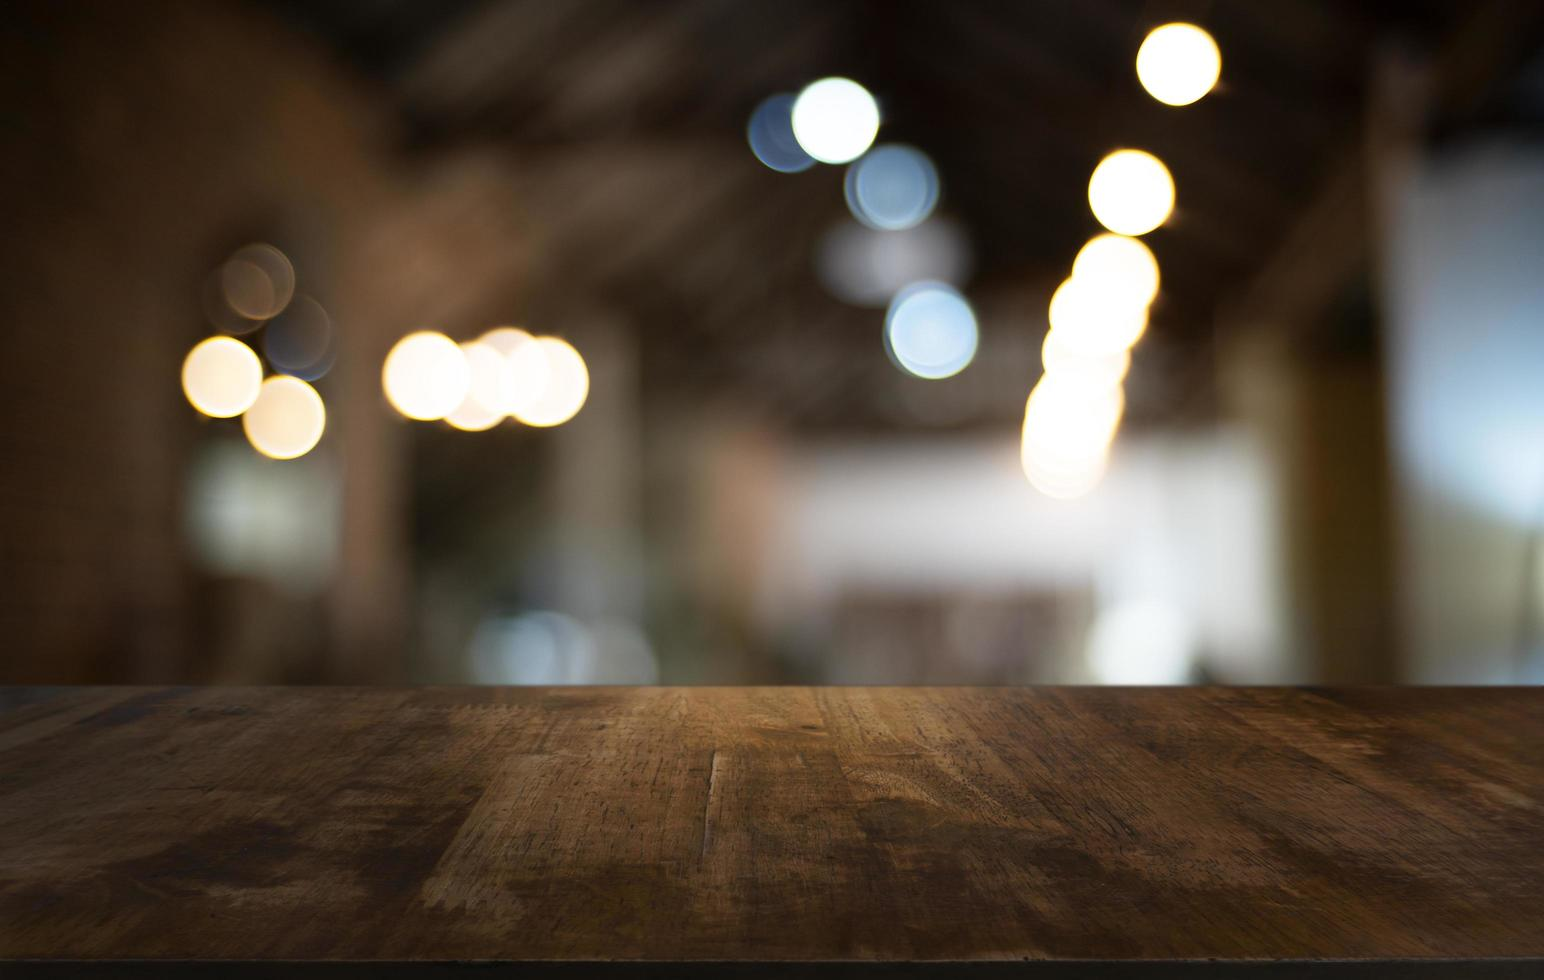 Wood table top with blurred background photo